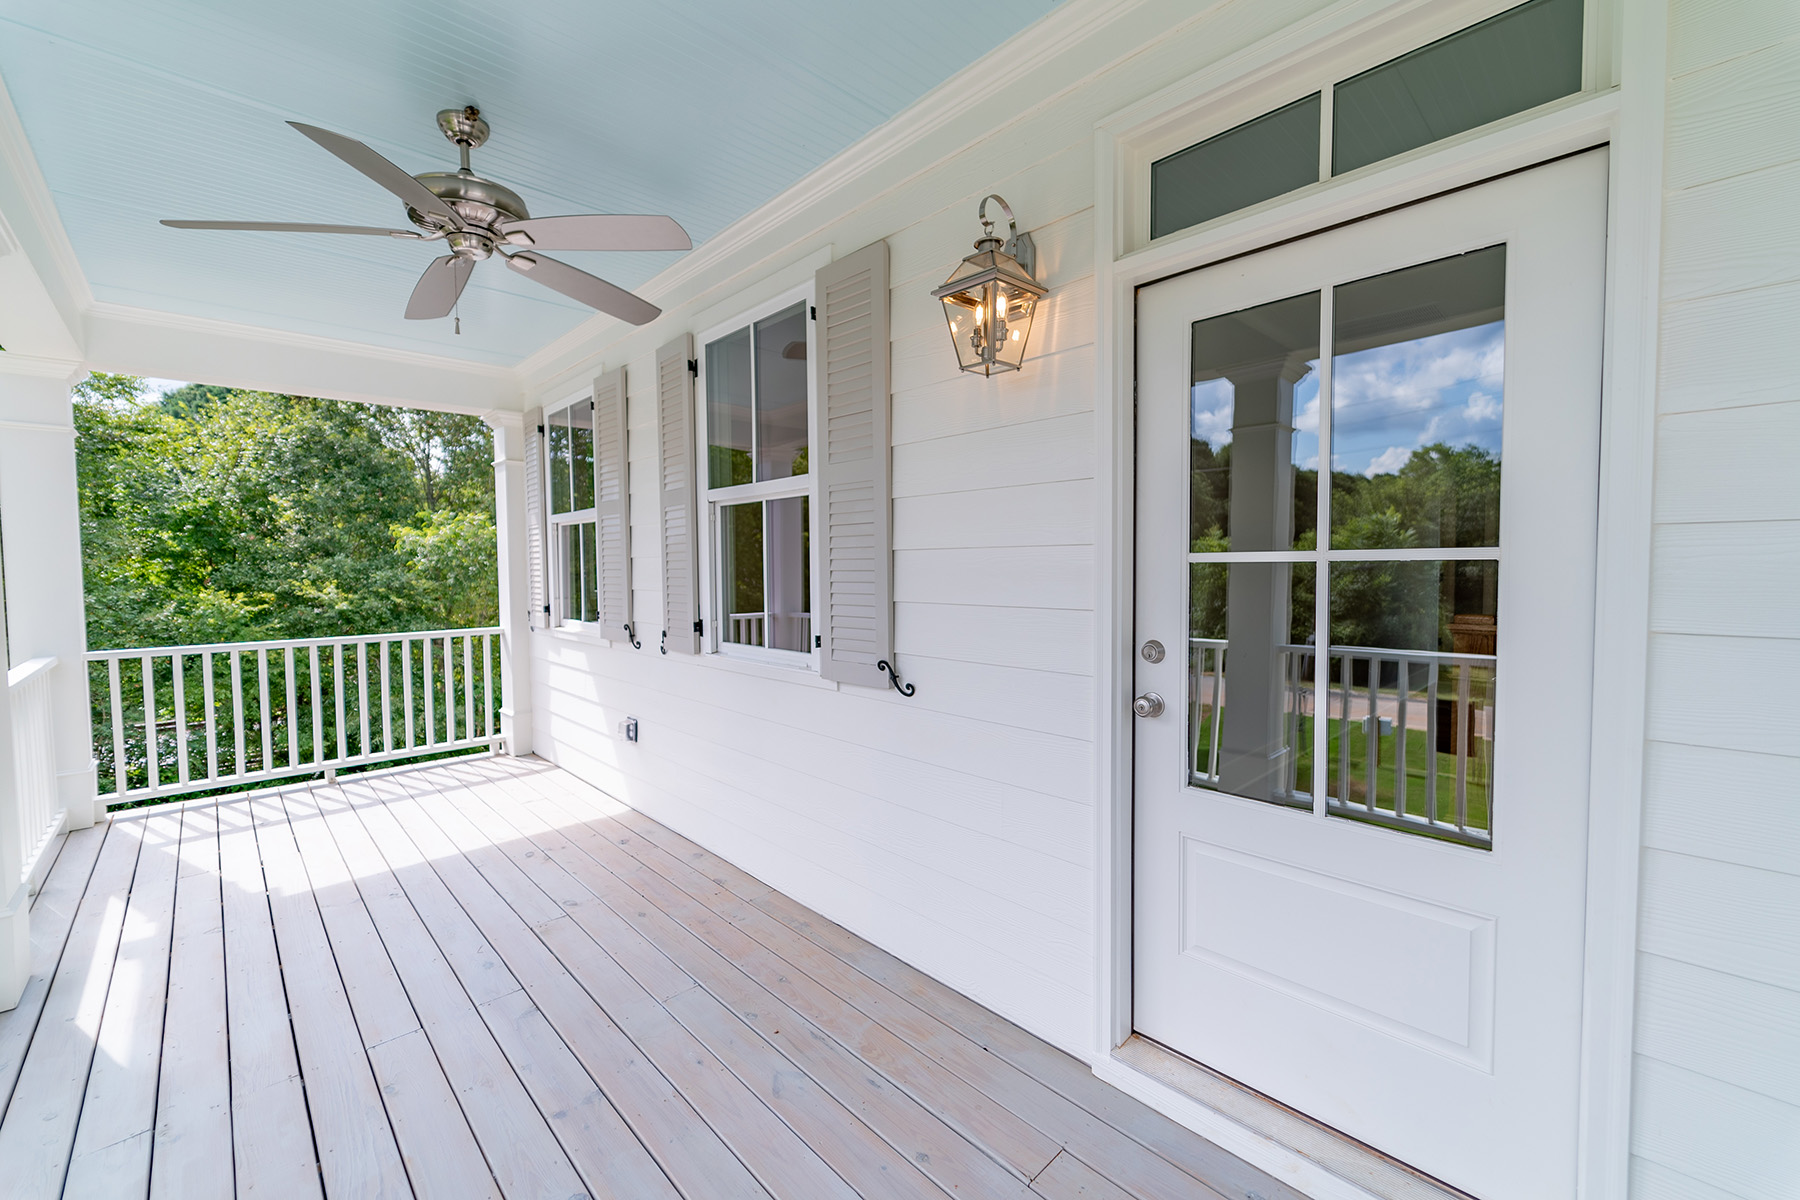 Additional photo for property listing at Modern Farmhouse in The Historic Town of Senoia 400 Seavy Street, Senoia, Georgia 30276 Hoa Kỳ